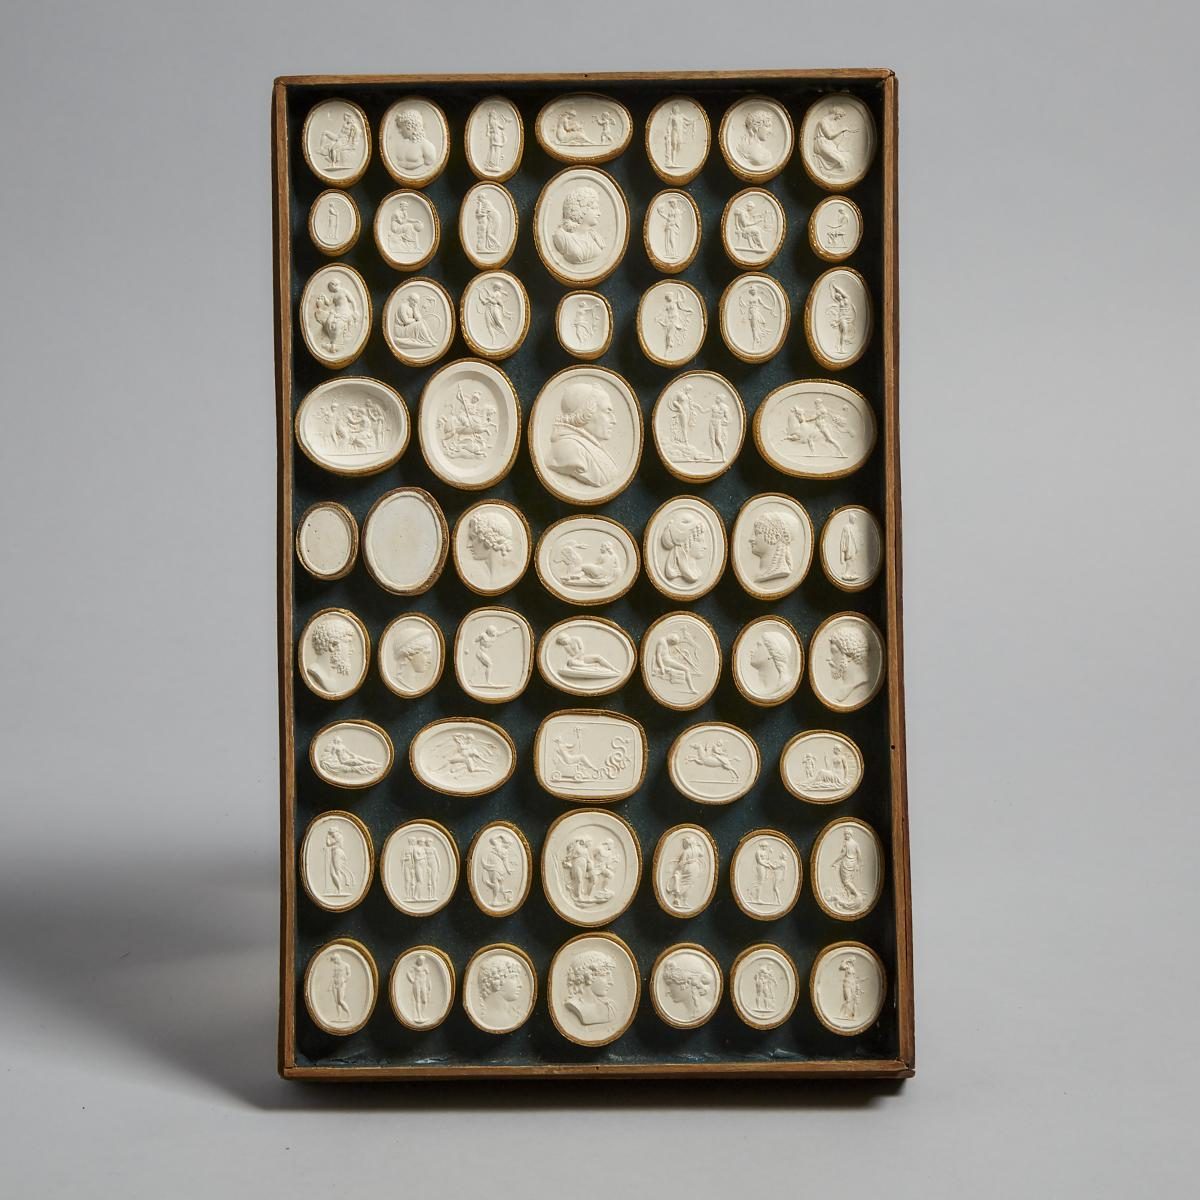 Cased Set of Italian Plaster Intaglio Medallions by Pietro Bracci, Rome, late 18th/early 19th centur - Image 4 of 7